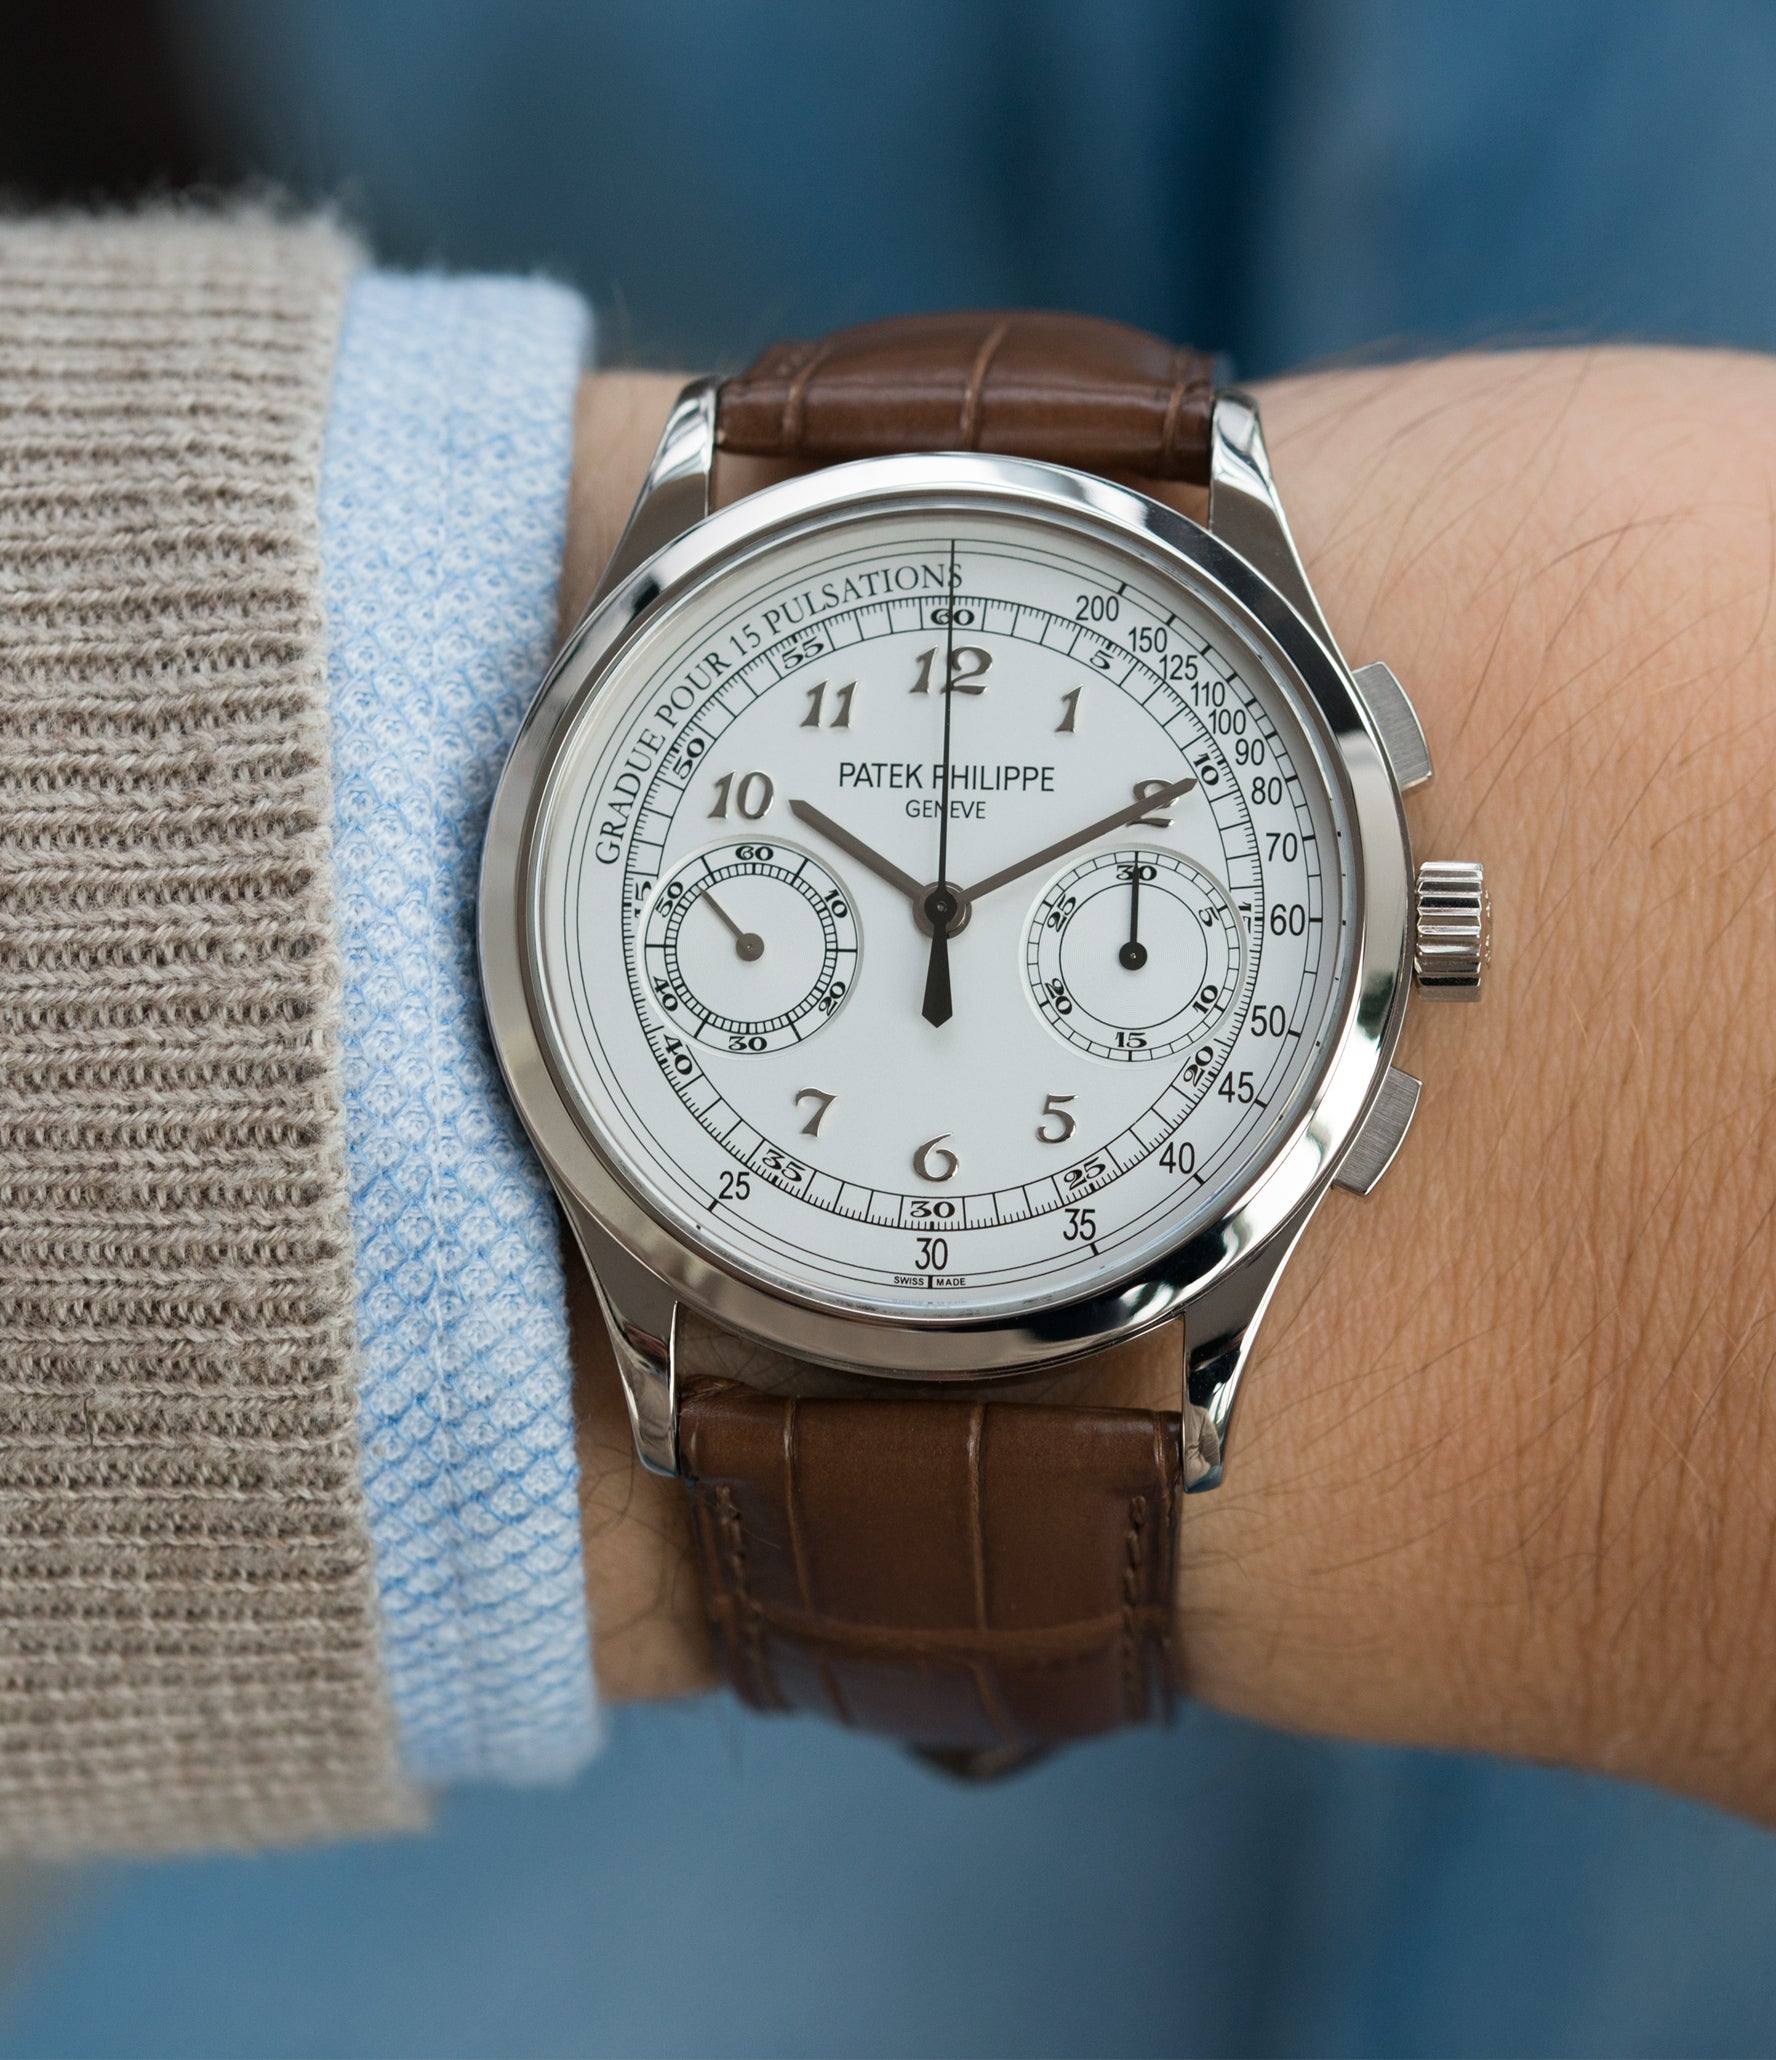 buy 5170 Patek Philippe grey gold dress Chronograph Pulsation Scale preowned watch at A Collected Man London rare watch specialist in United Kingdom